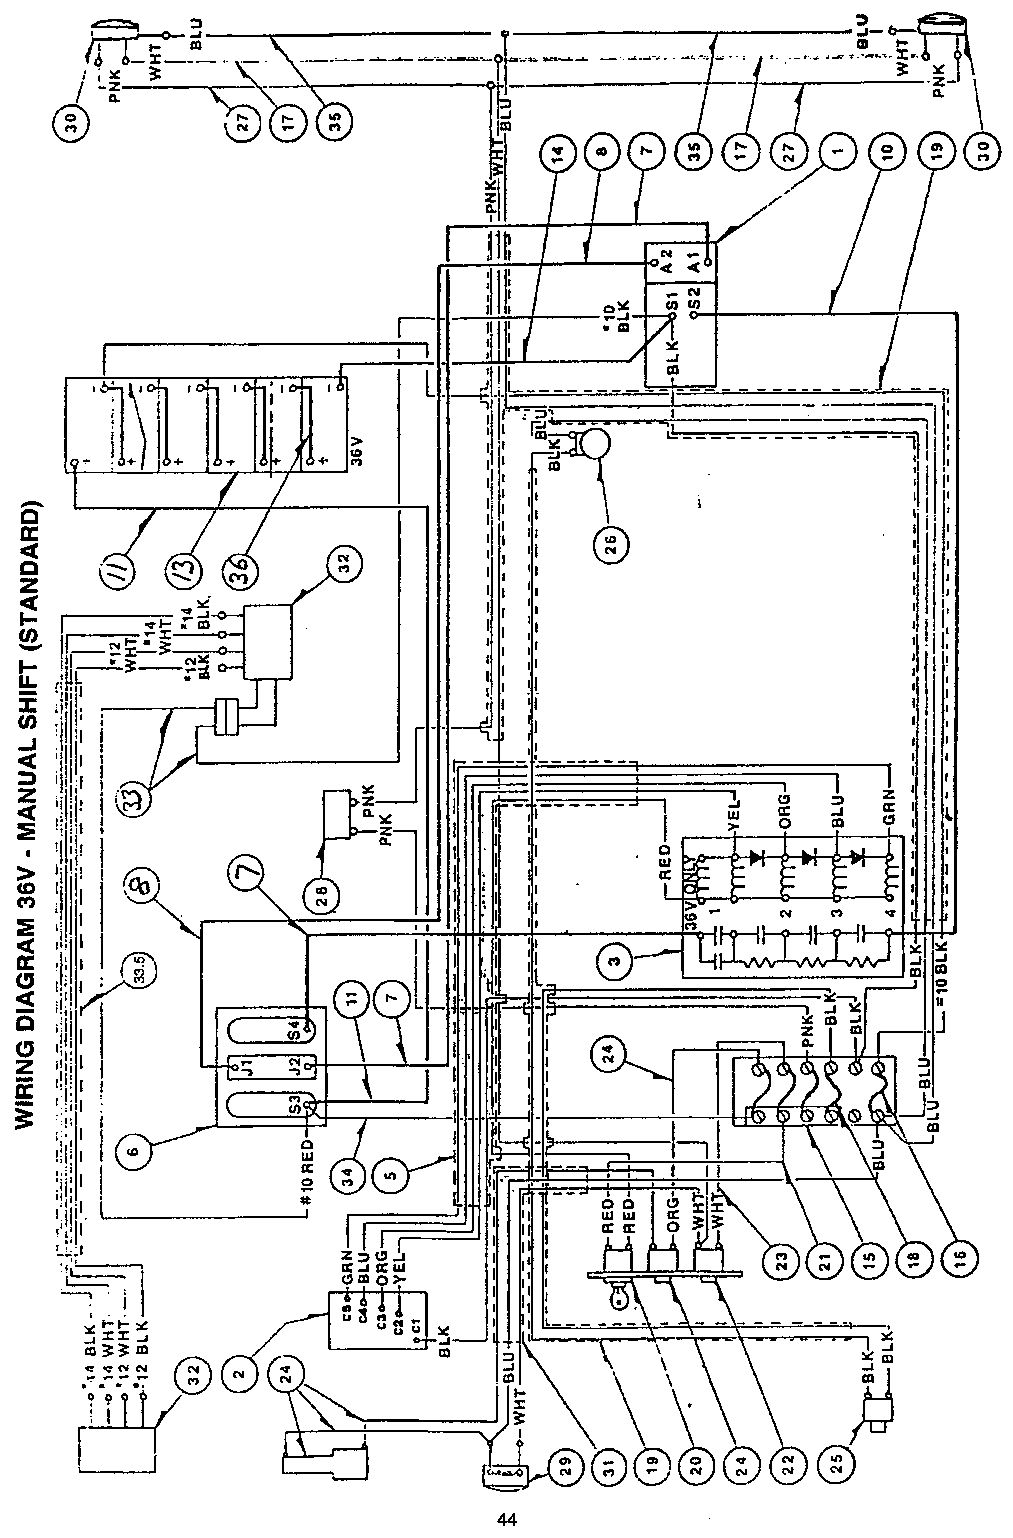 2003 Saturn L200 Fuse Box Diagram. Saturn. Auto Fuse Box